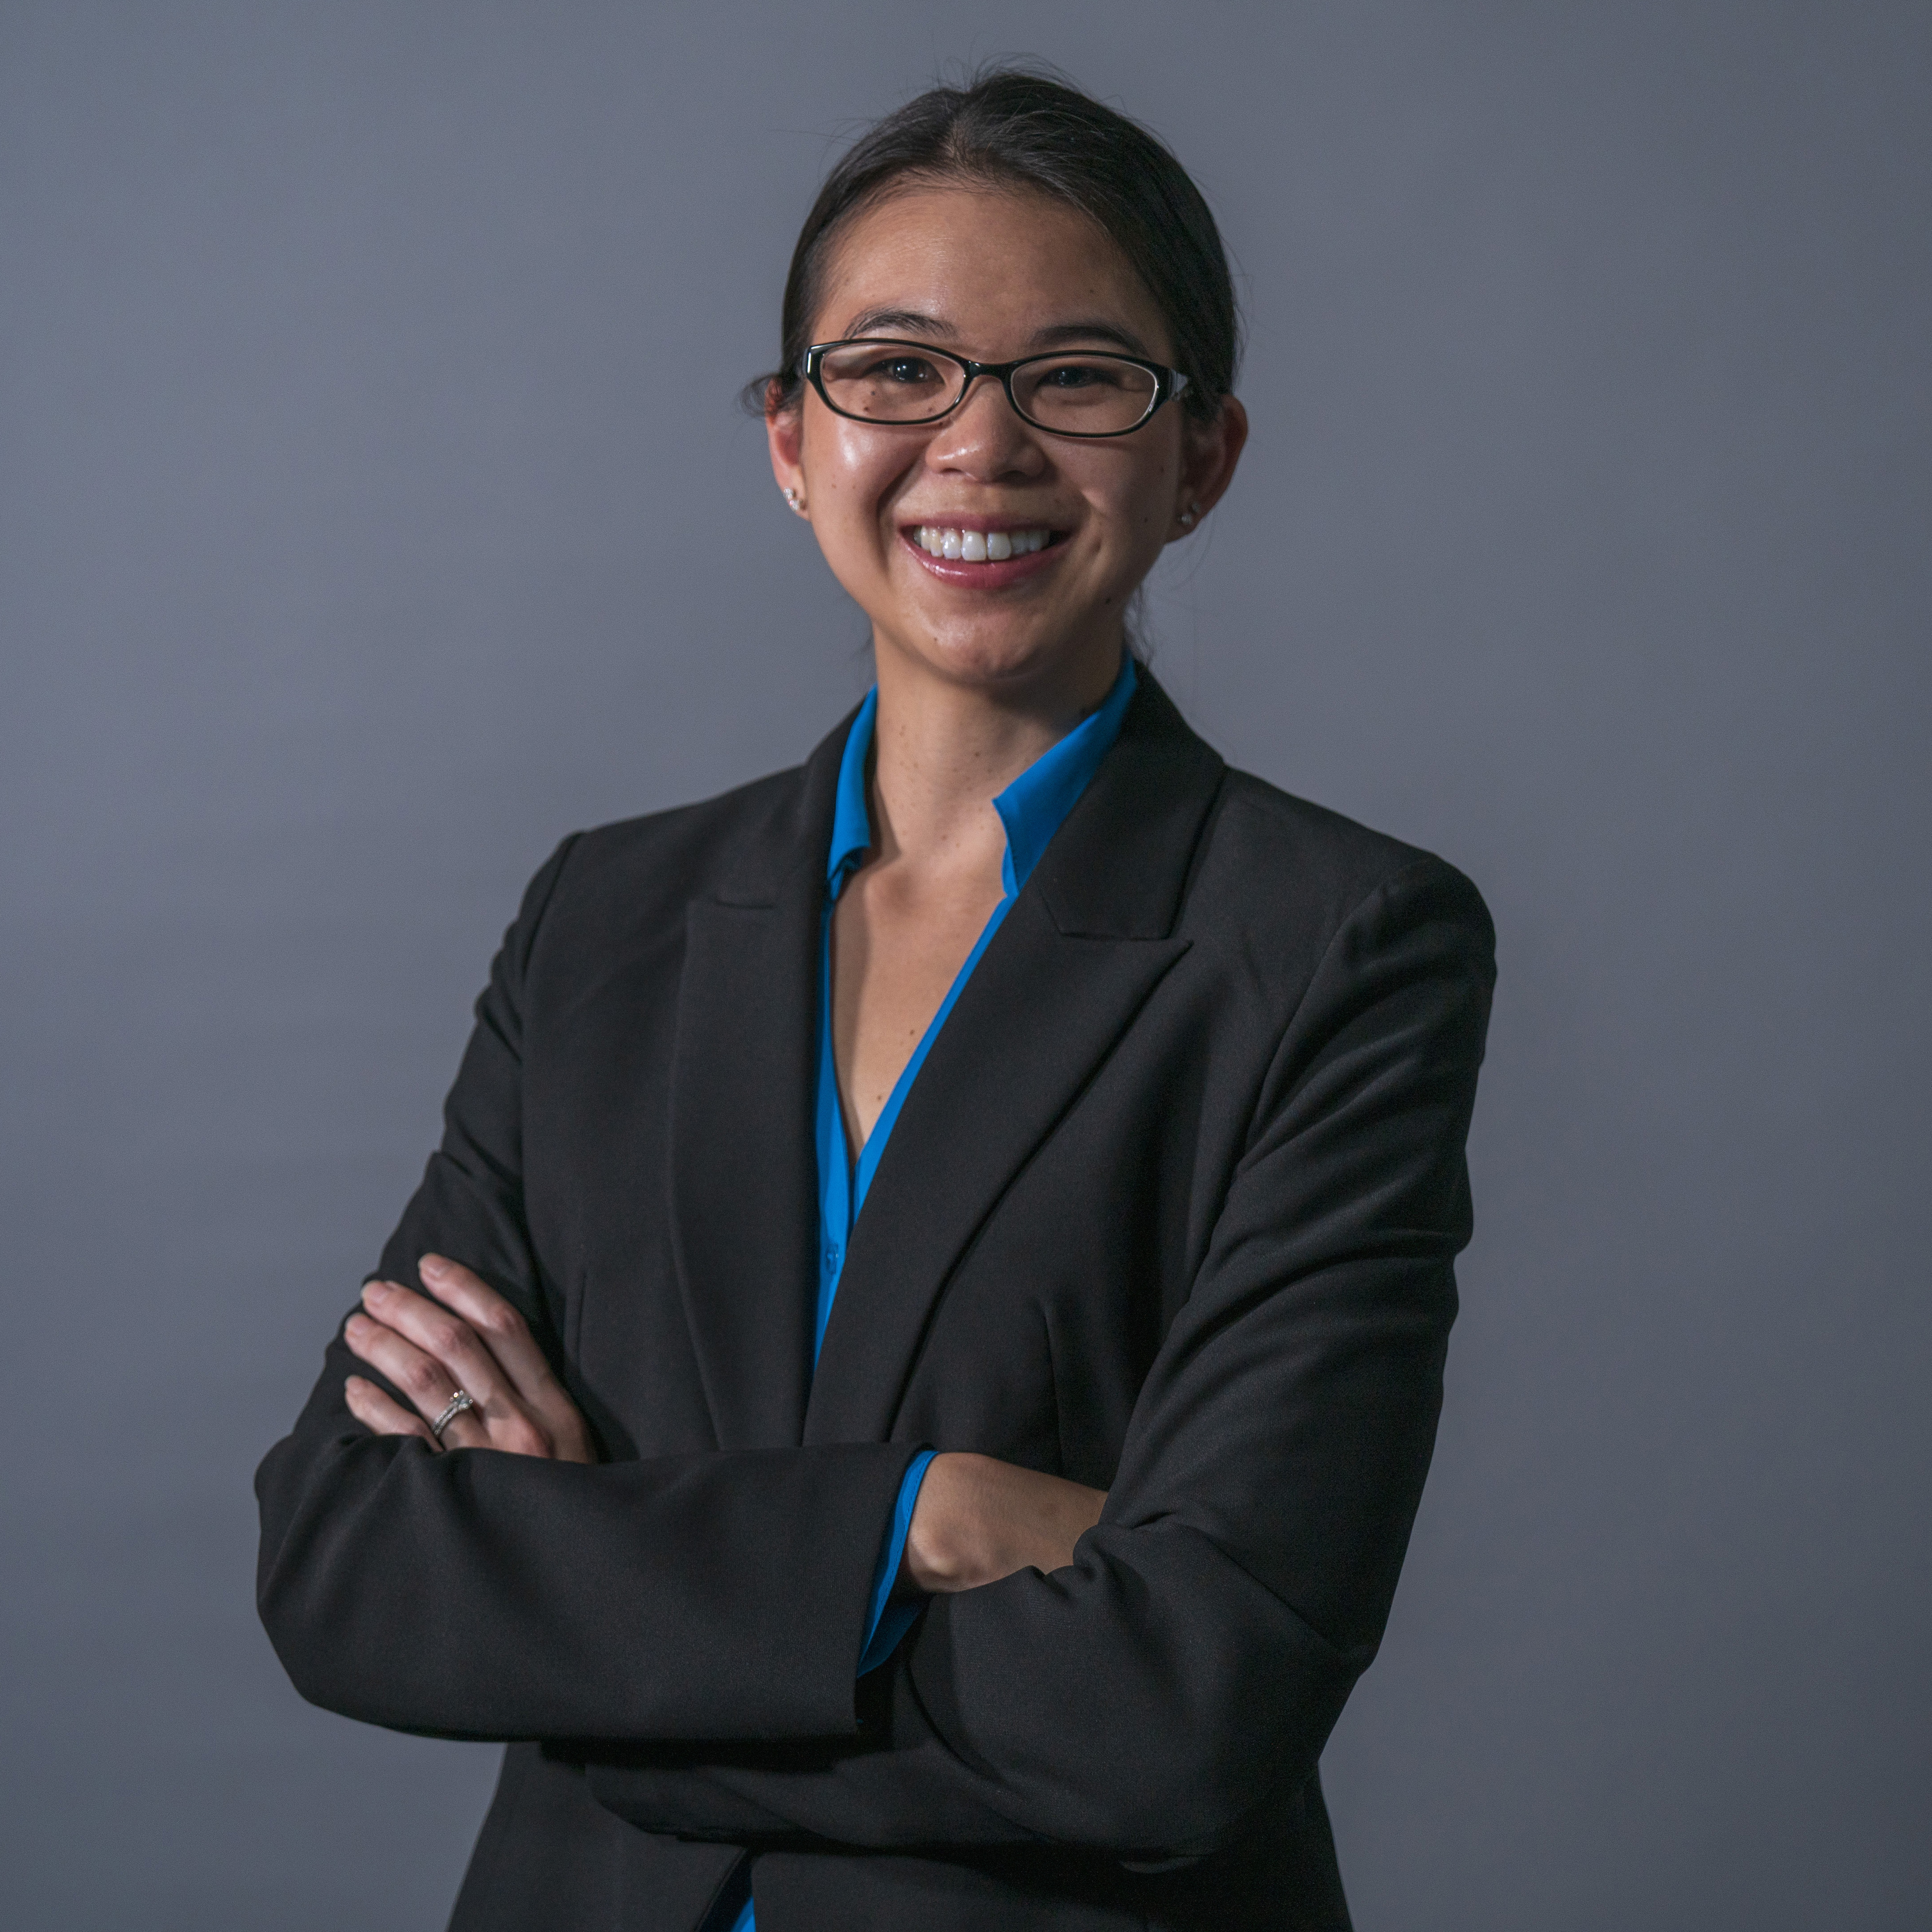 Photograph of smiling Asian woman wearing black framed glasses, black suit posing for camera.